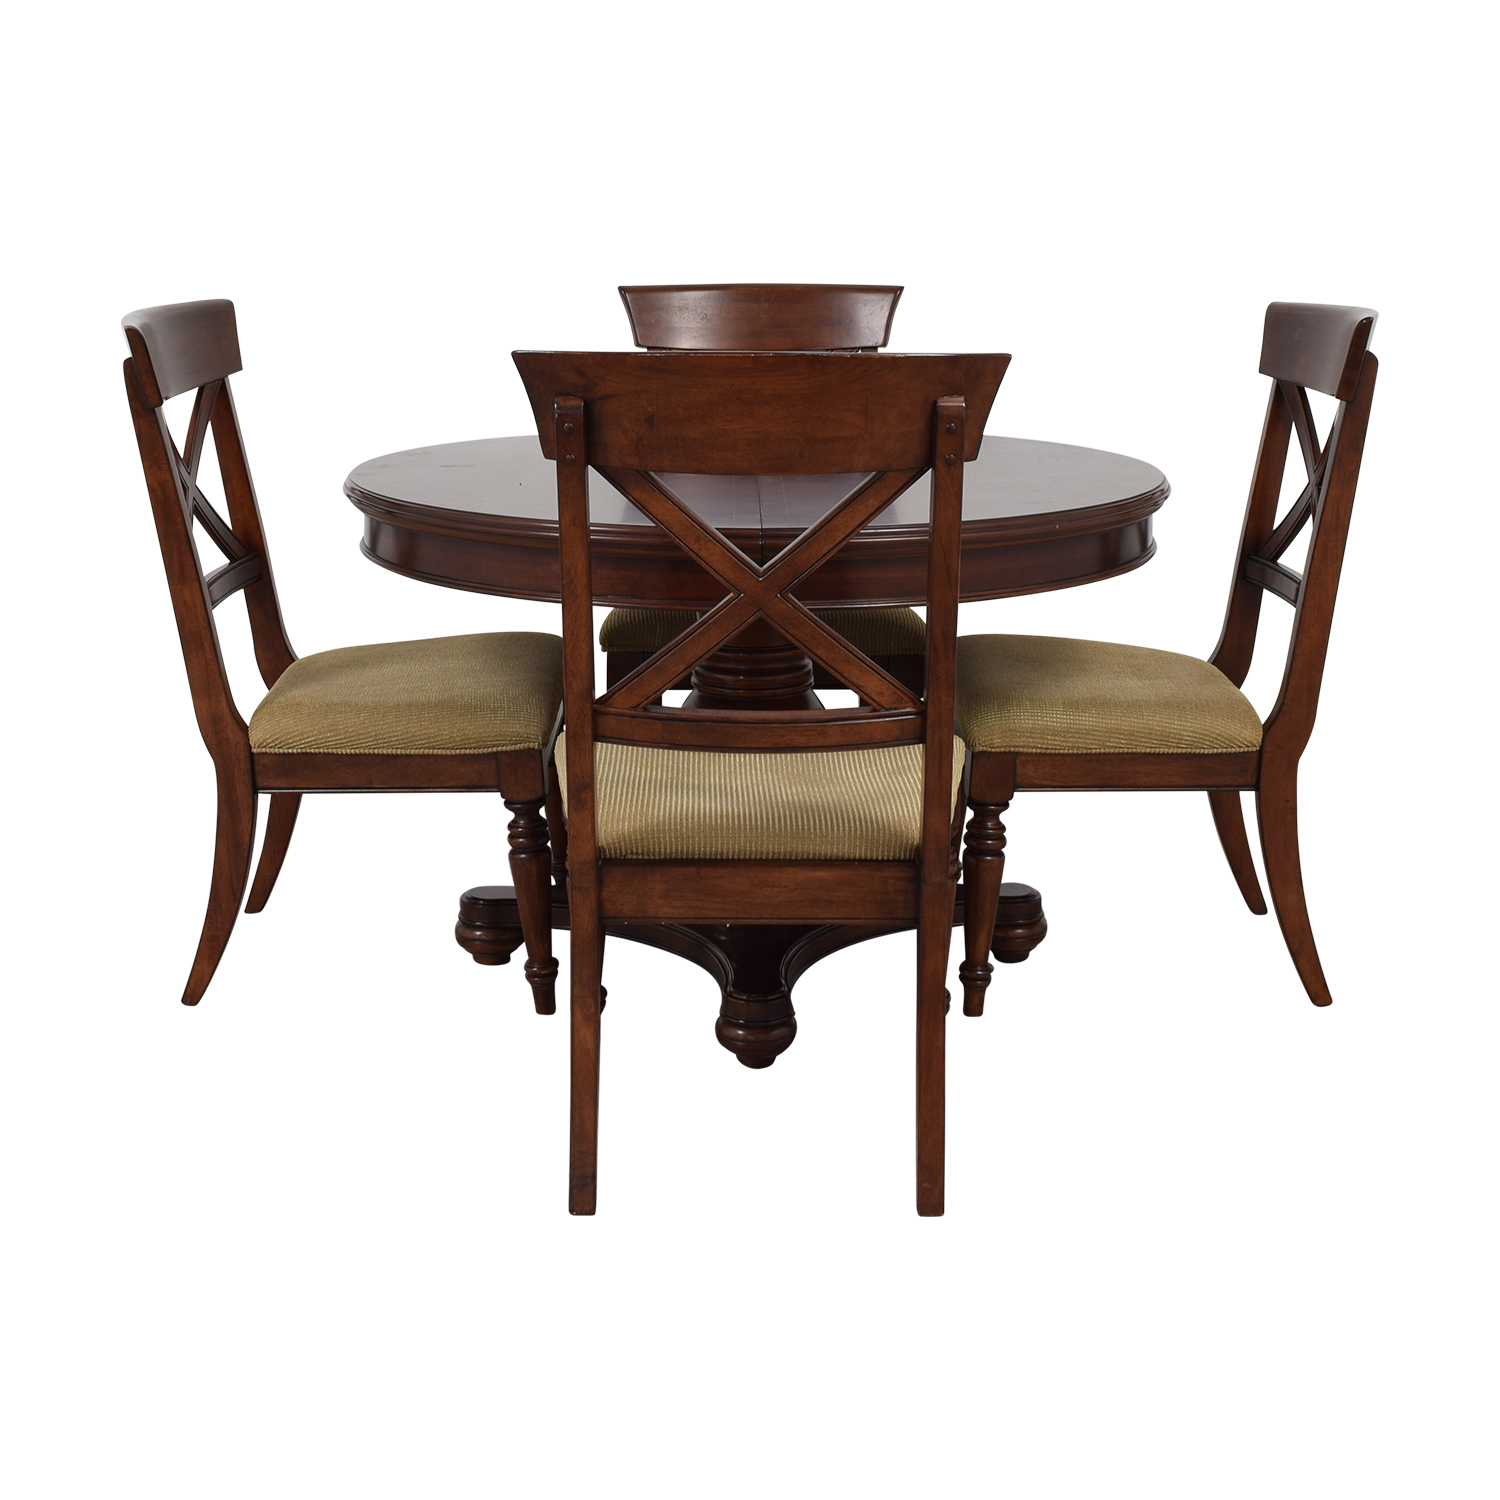 Macy's Macy's Pedestal Round Expandable Dining